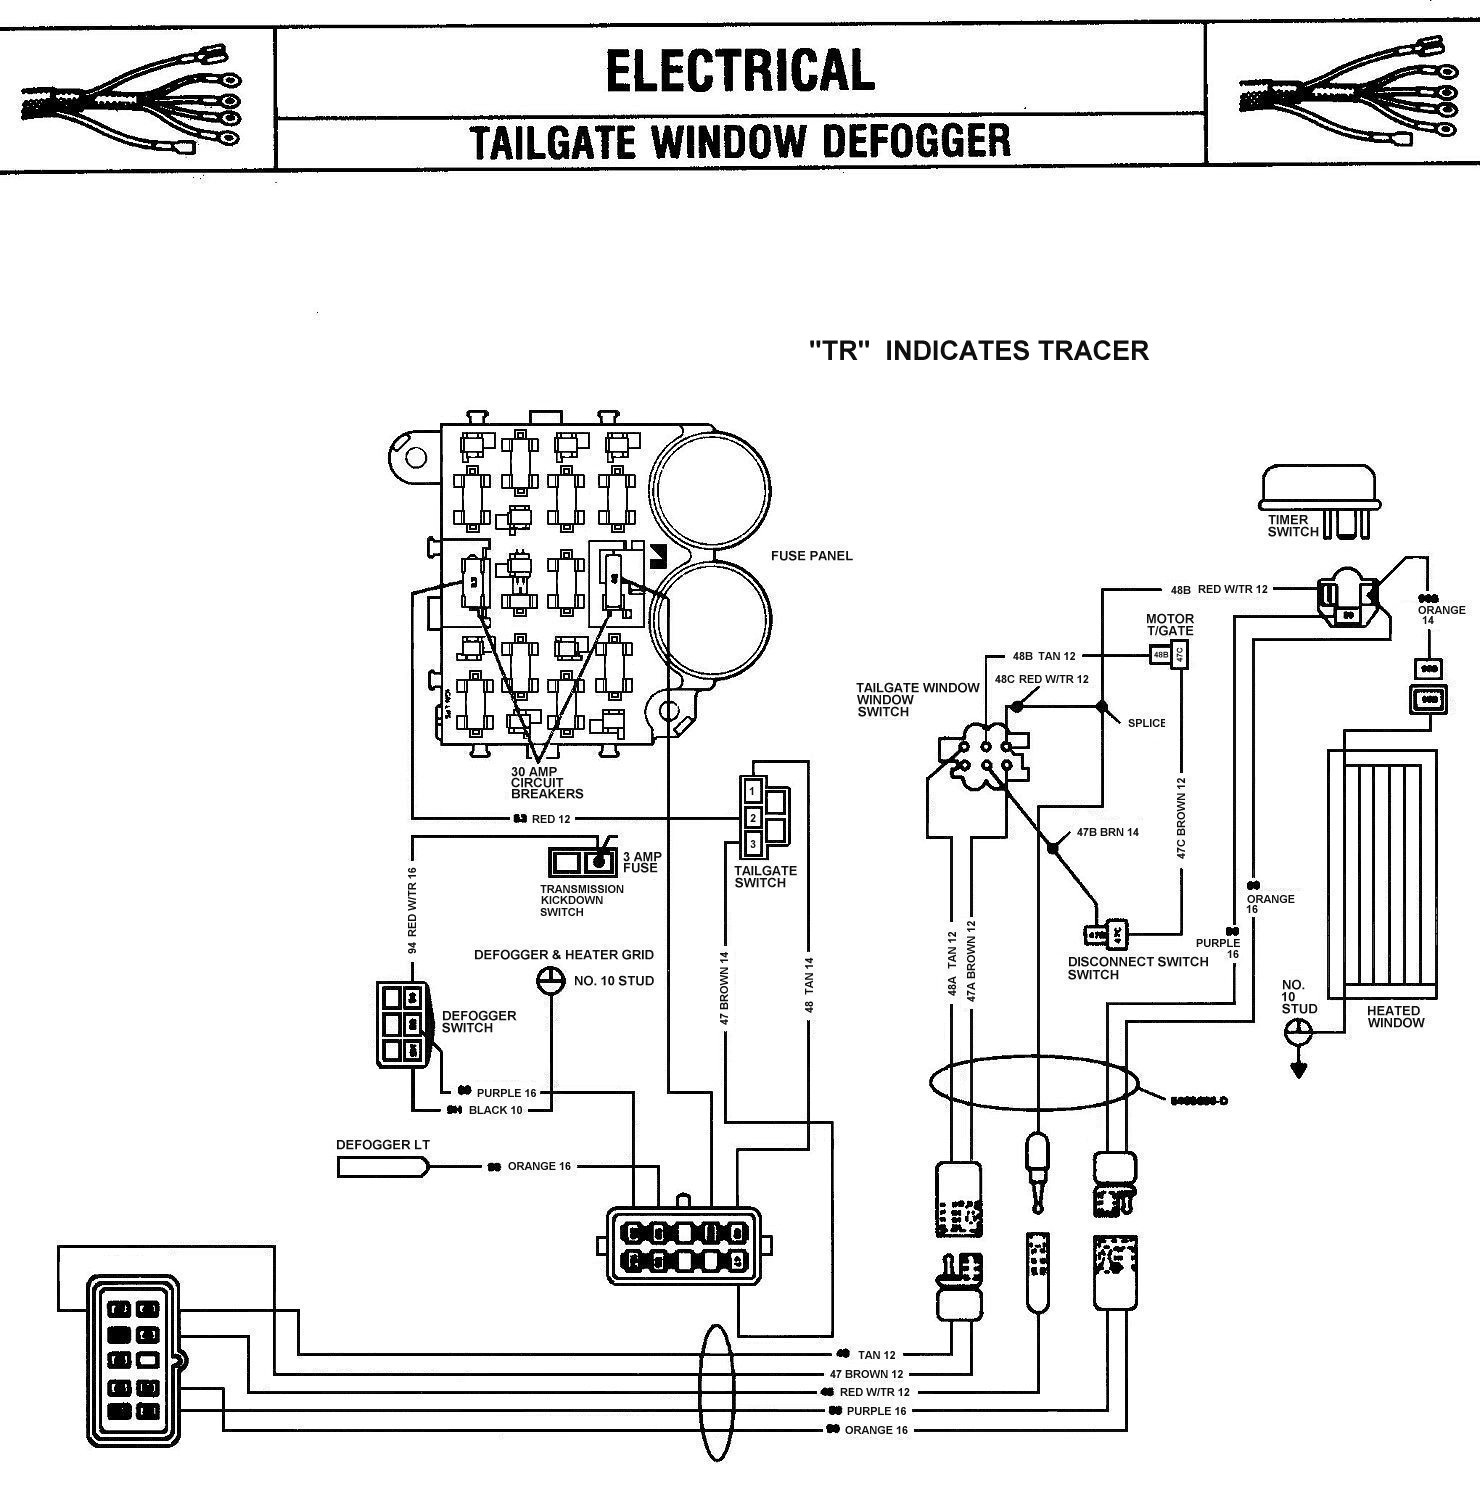 Tom 'oljeep' Collins Fsj Wiring Page - International Truck Wiring Diagram